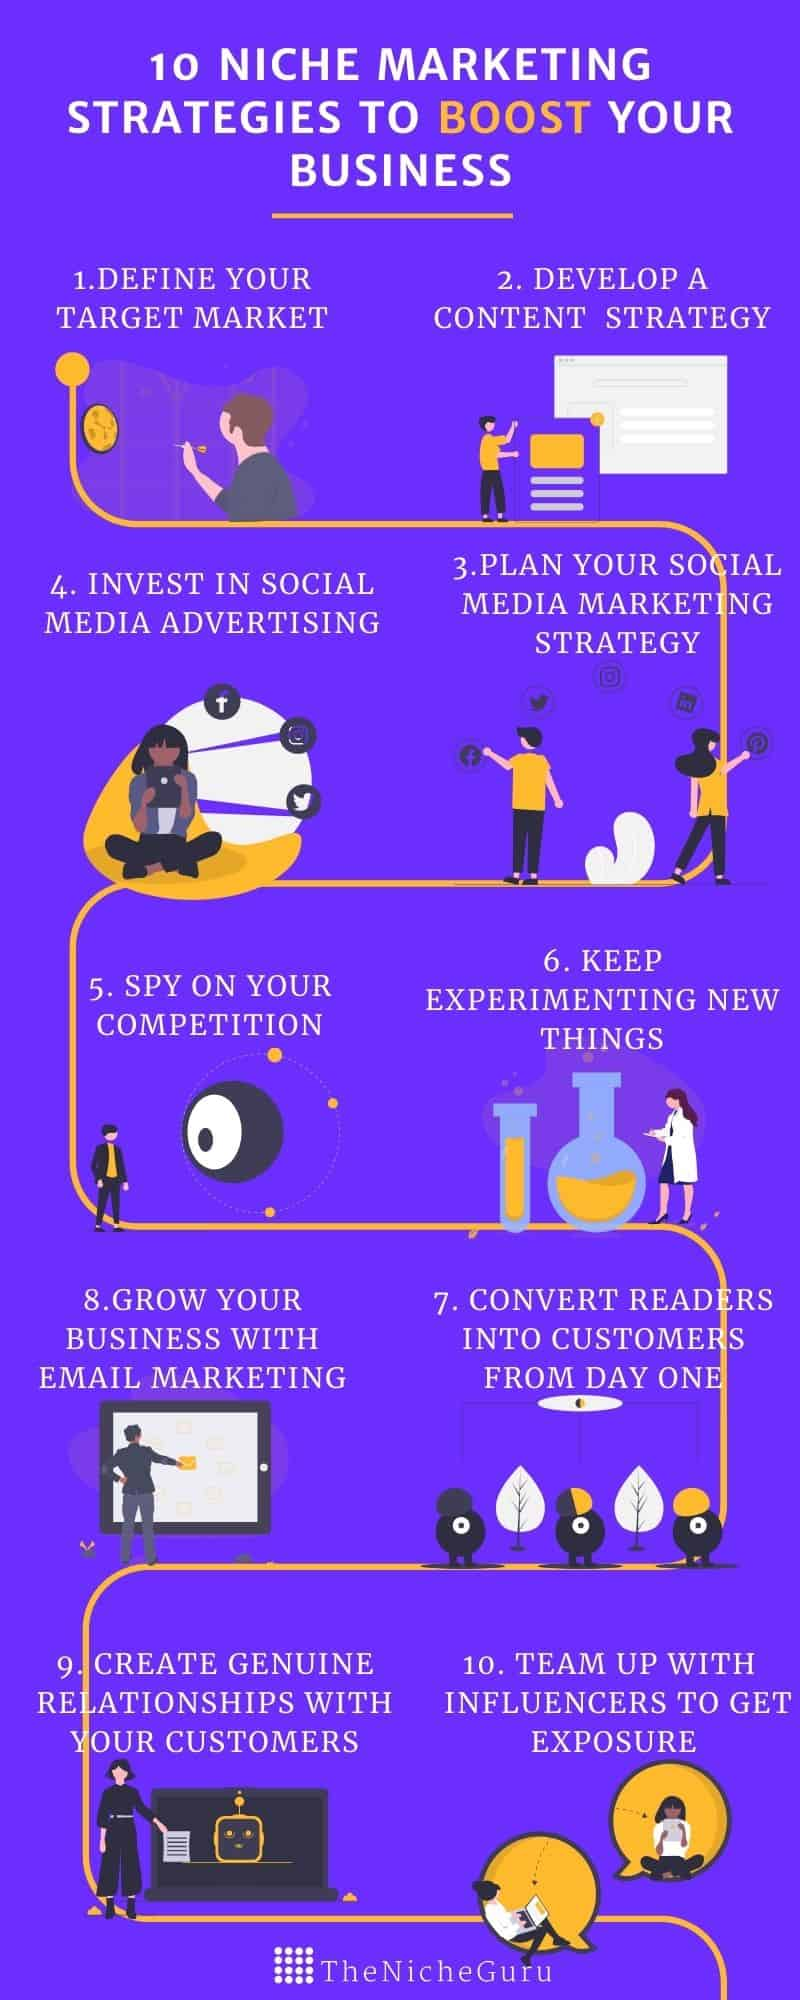 niche marketing strategies infographic